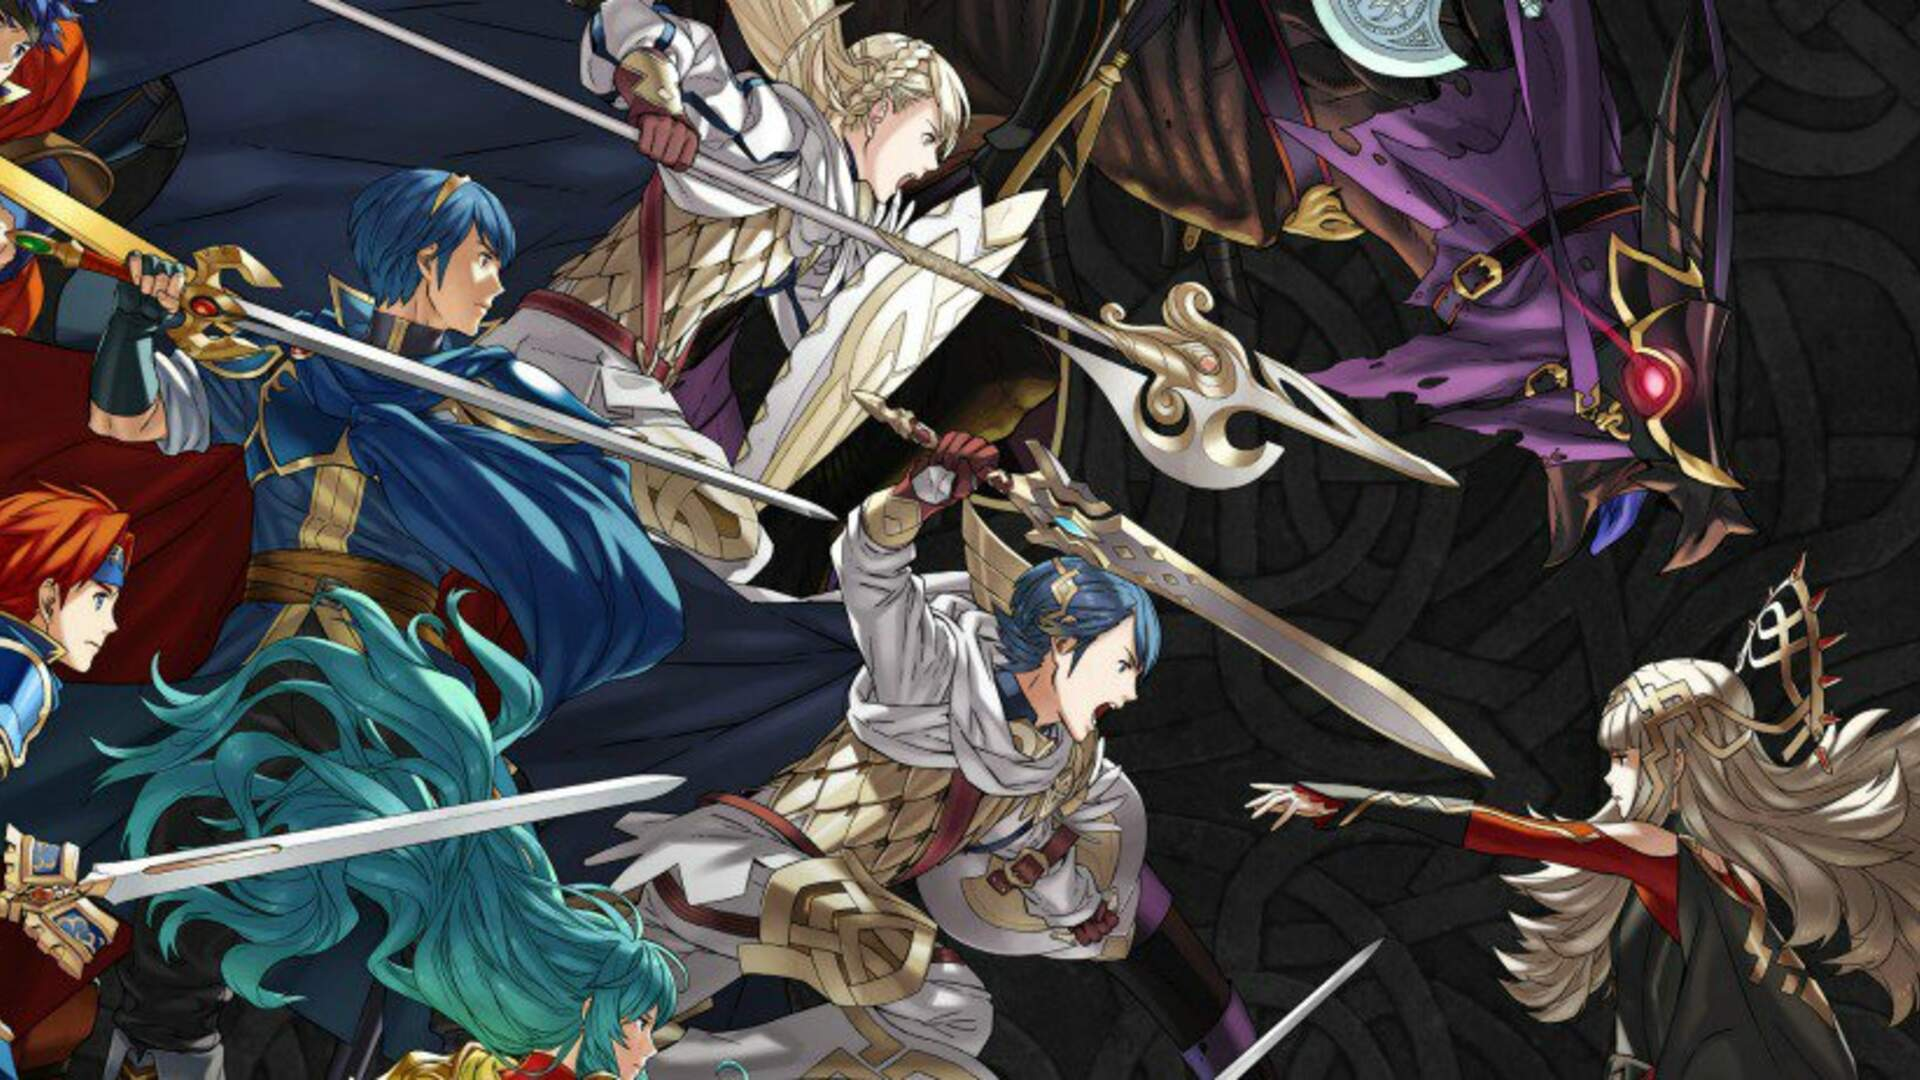 Fire Emblem Heroes Update 1.4.0 - Tempest Trials, New Quest Markers, More Teams - Everything We Know